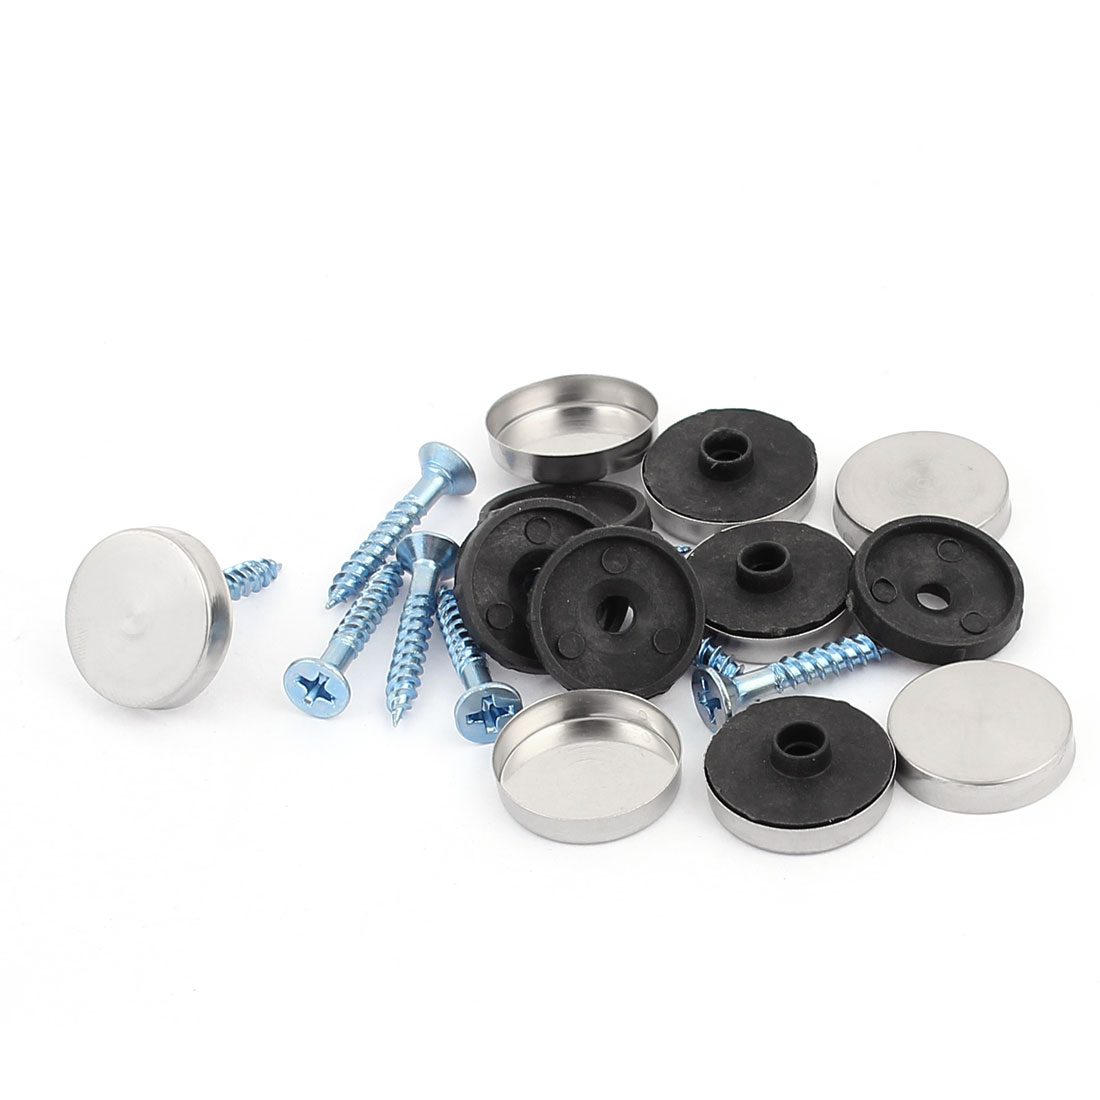 8 Pcs Anti-rust Fixed Mirror Nail Pad Decorative Fasteners Billboard Studded 18mm Diameter